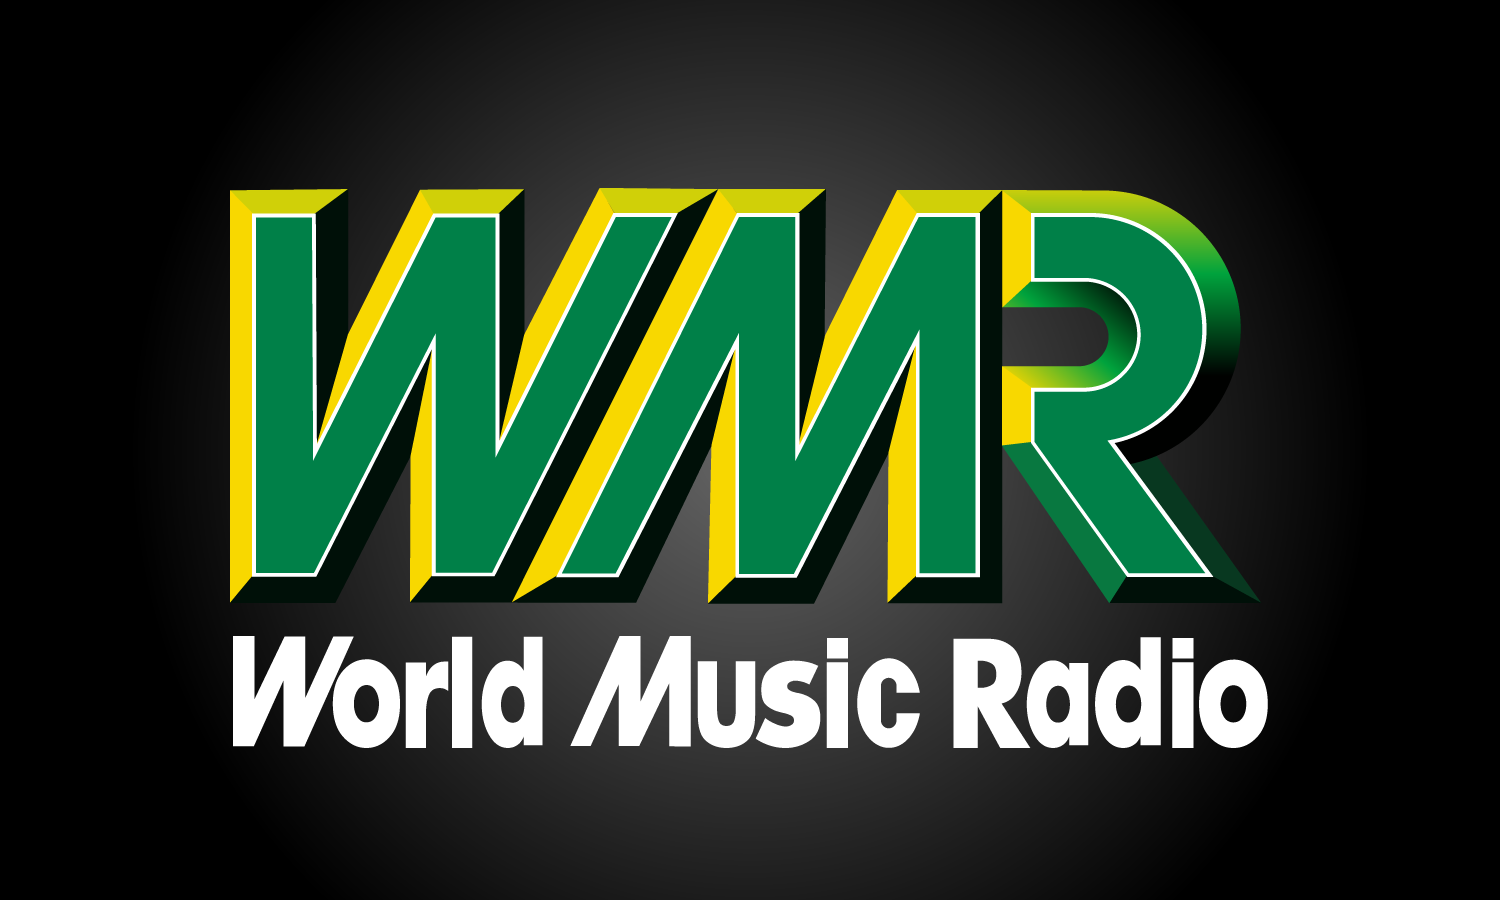 World Music Radio logo